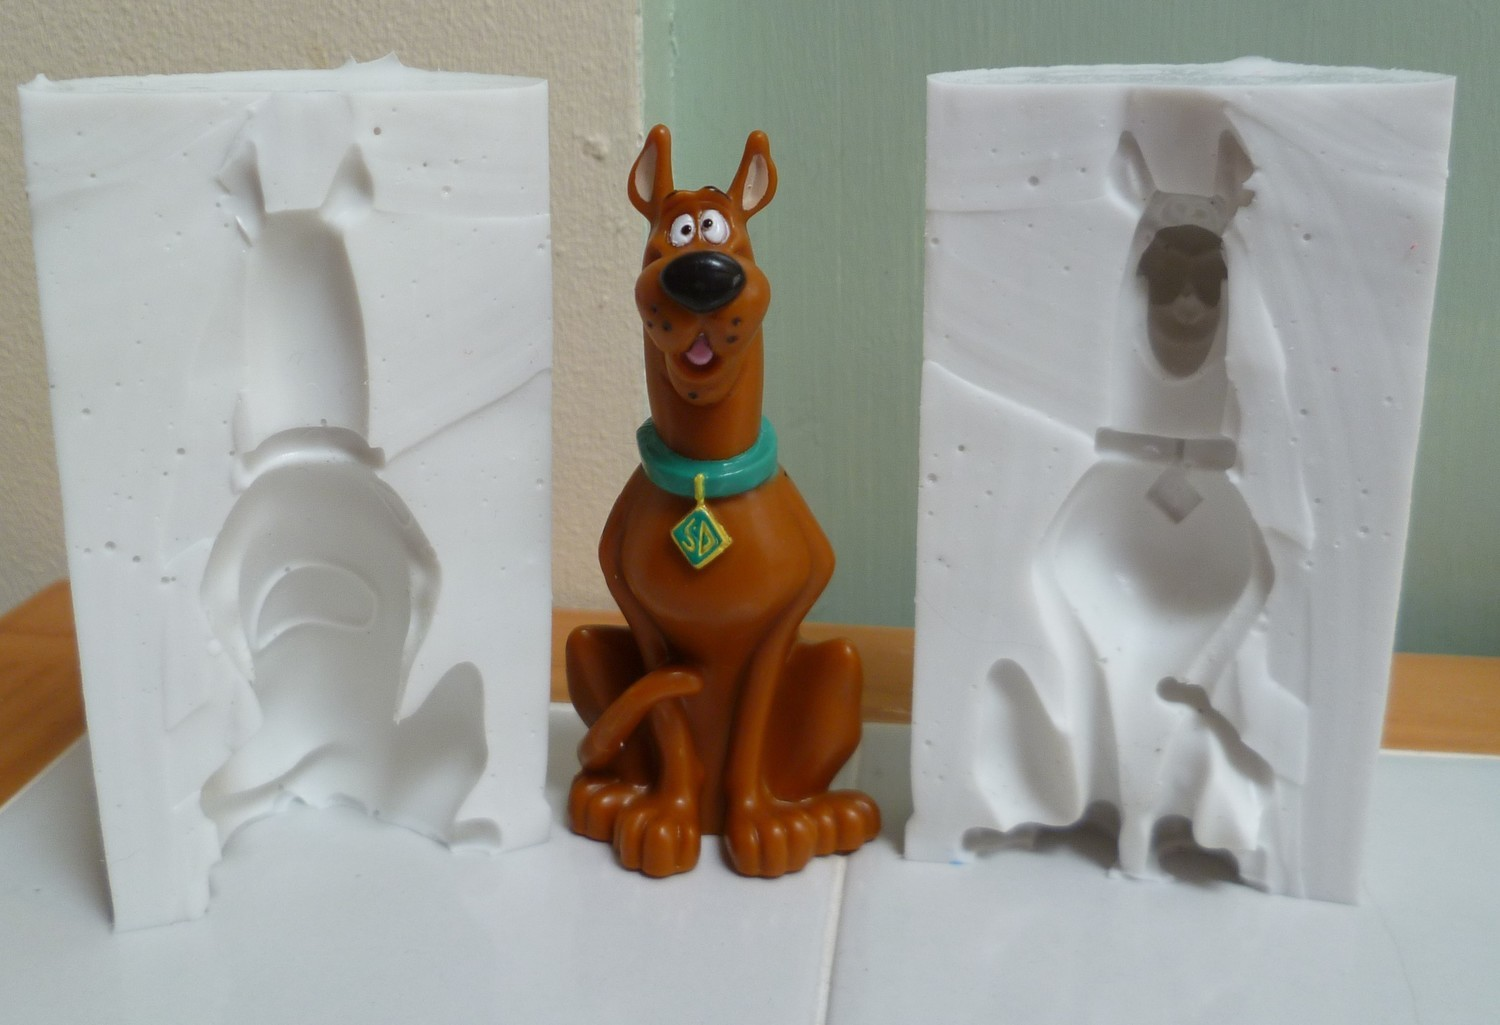 SCOOBY DOO 3D SILICONE MOULD (POURABLE SILICONE)